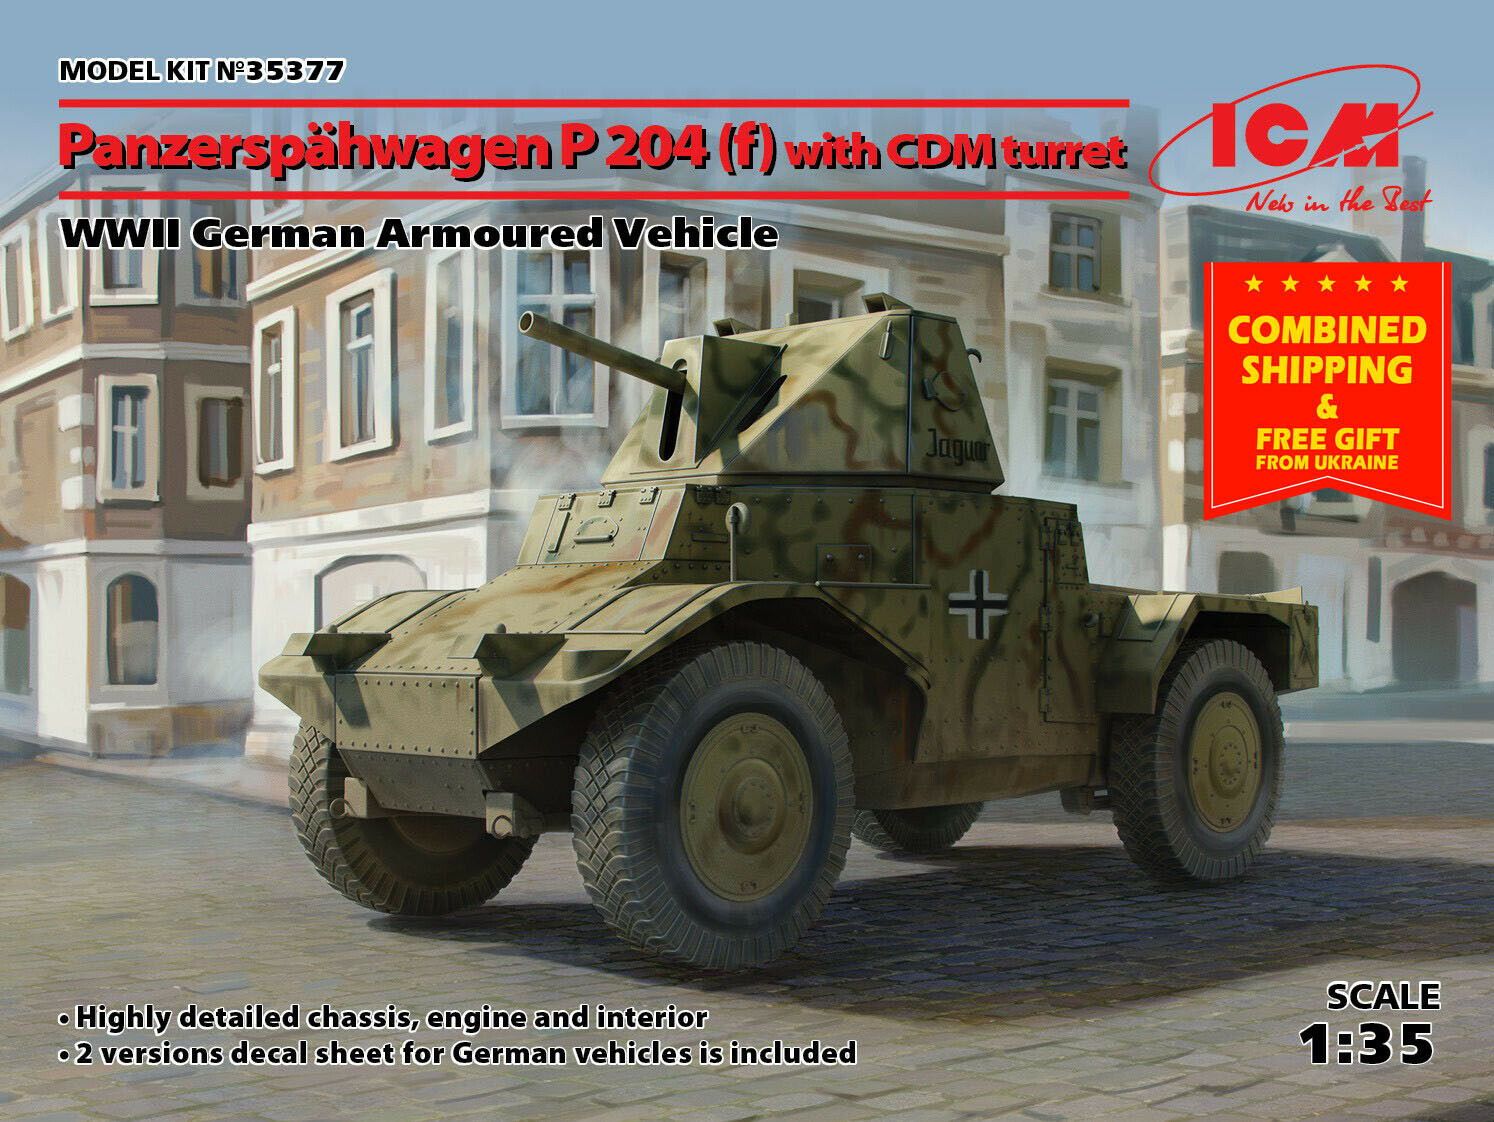 ICM 35377 - 1 35 - Panzerspähwagen P 204 (f) w  CDM turret WW II German vehicle